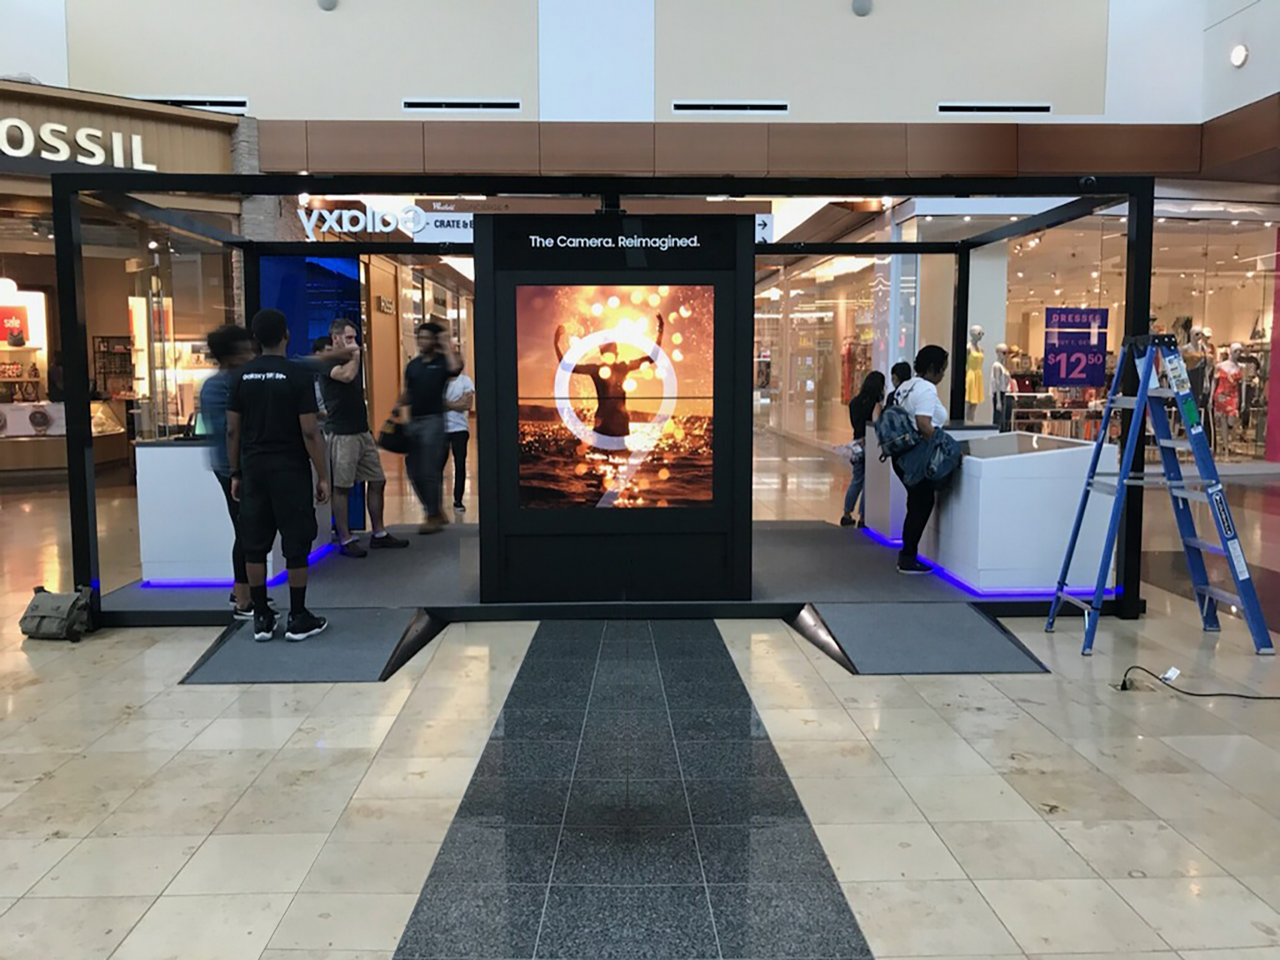 barrows, samsung, emagispace - connected retail